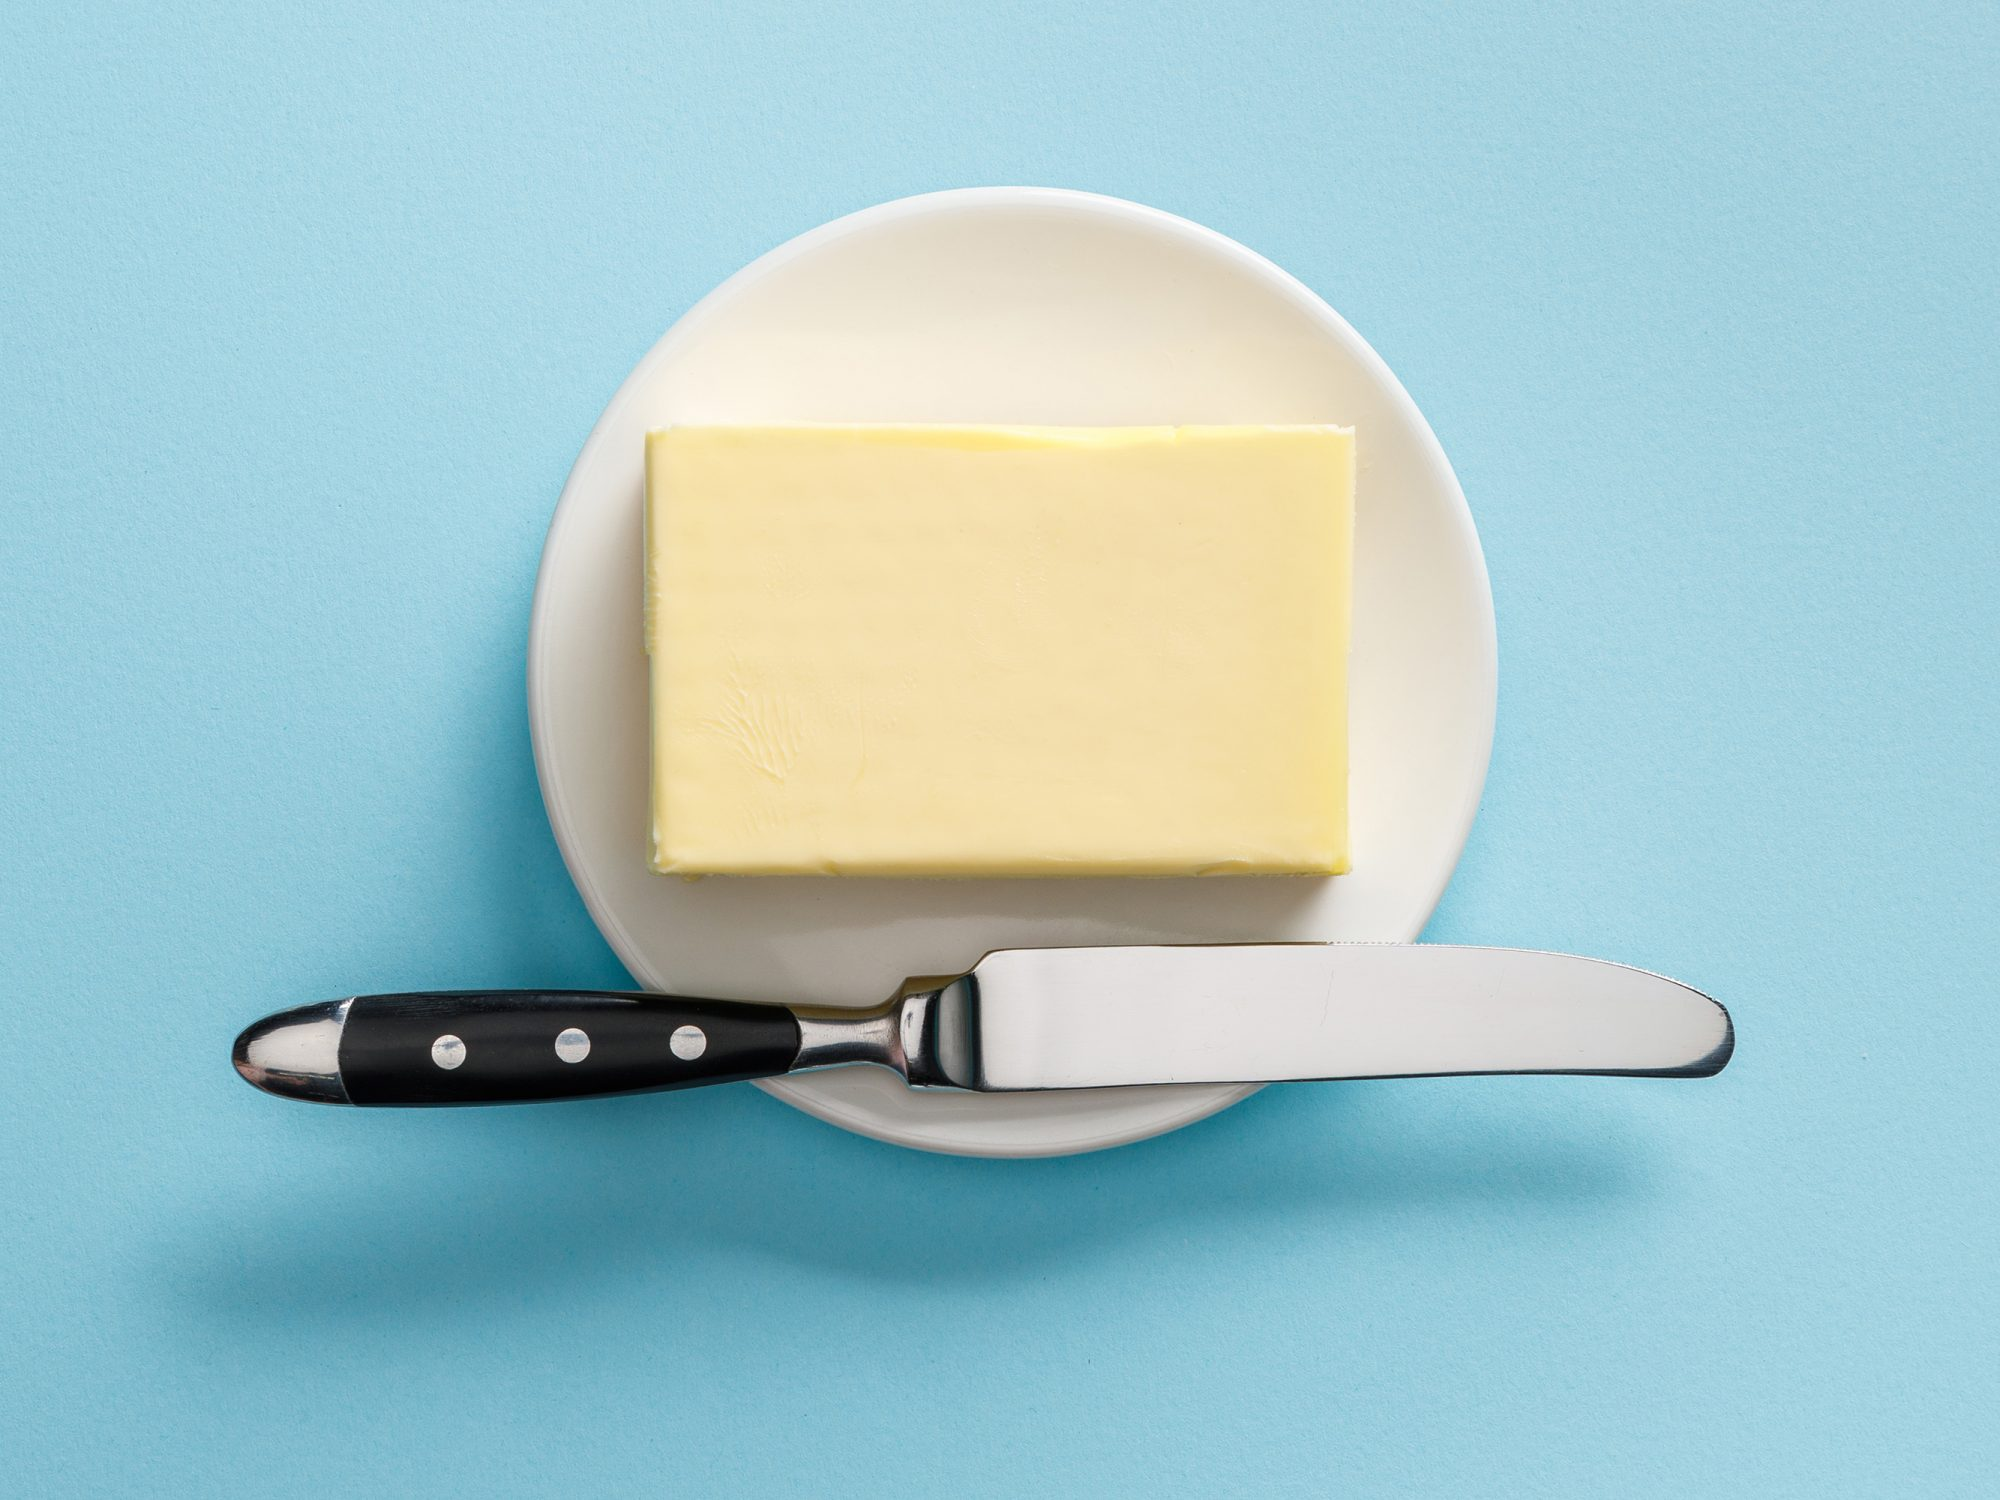 top view of butter and knife on white plate on blue background